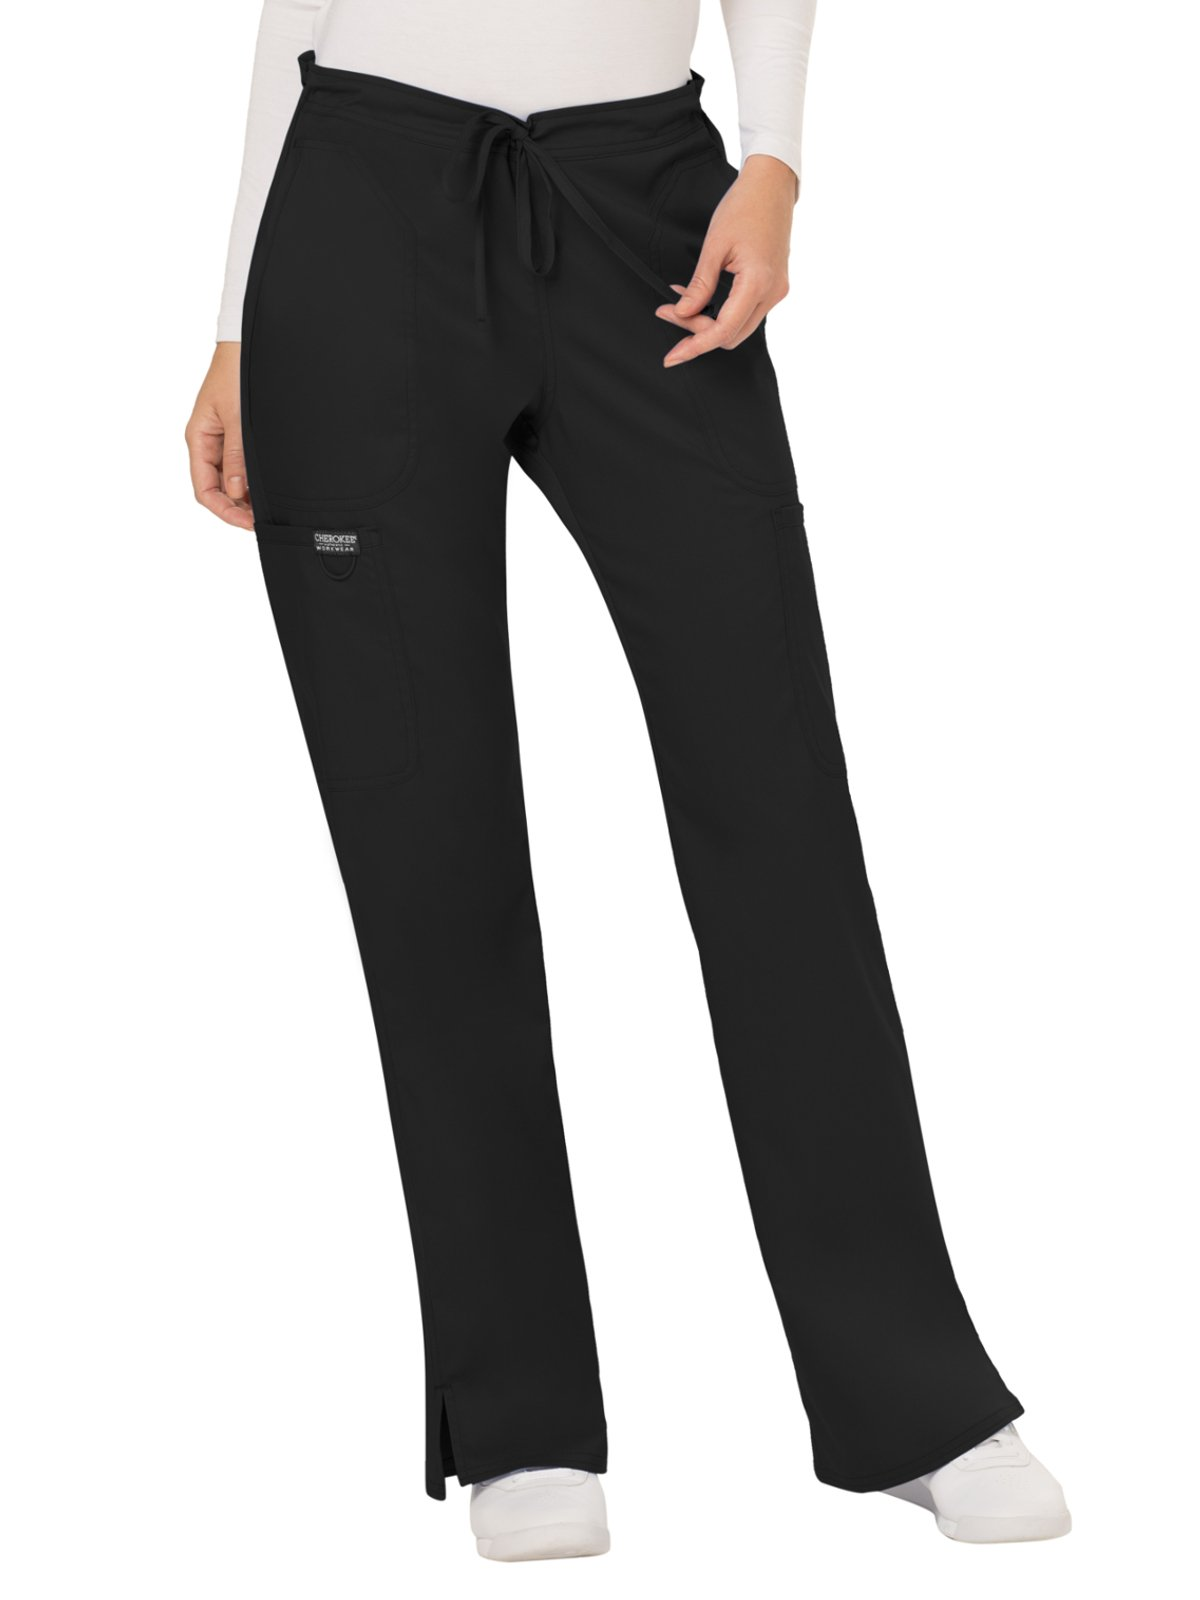 WW Revolution by Cherokee Women's Mid Rise Moderate Flare Drawstring Pant, Black, M